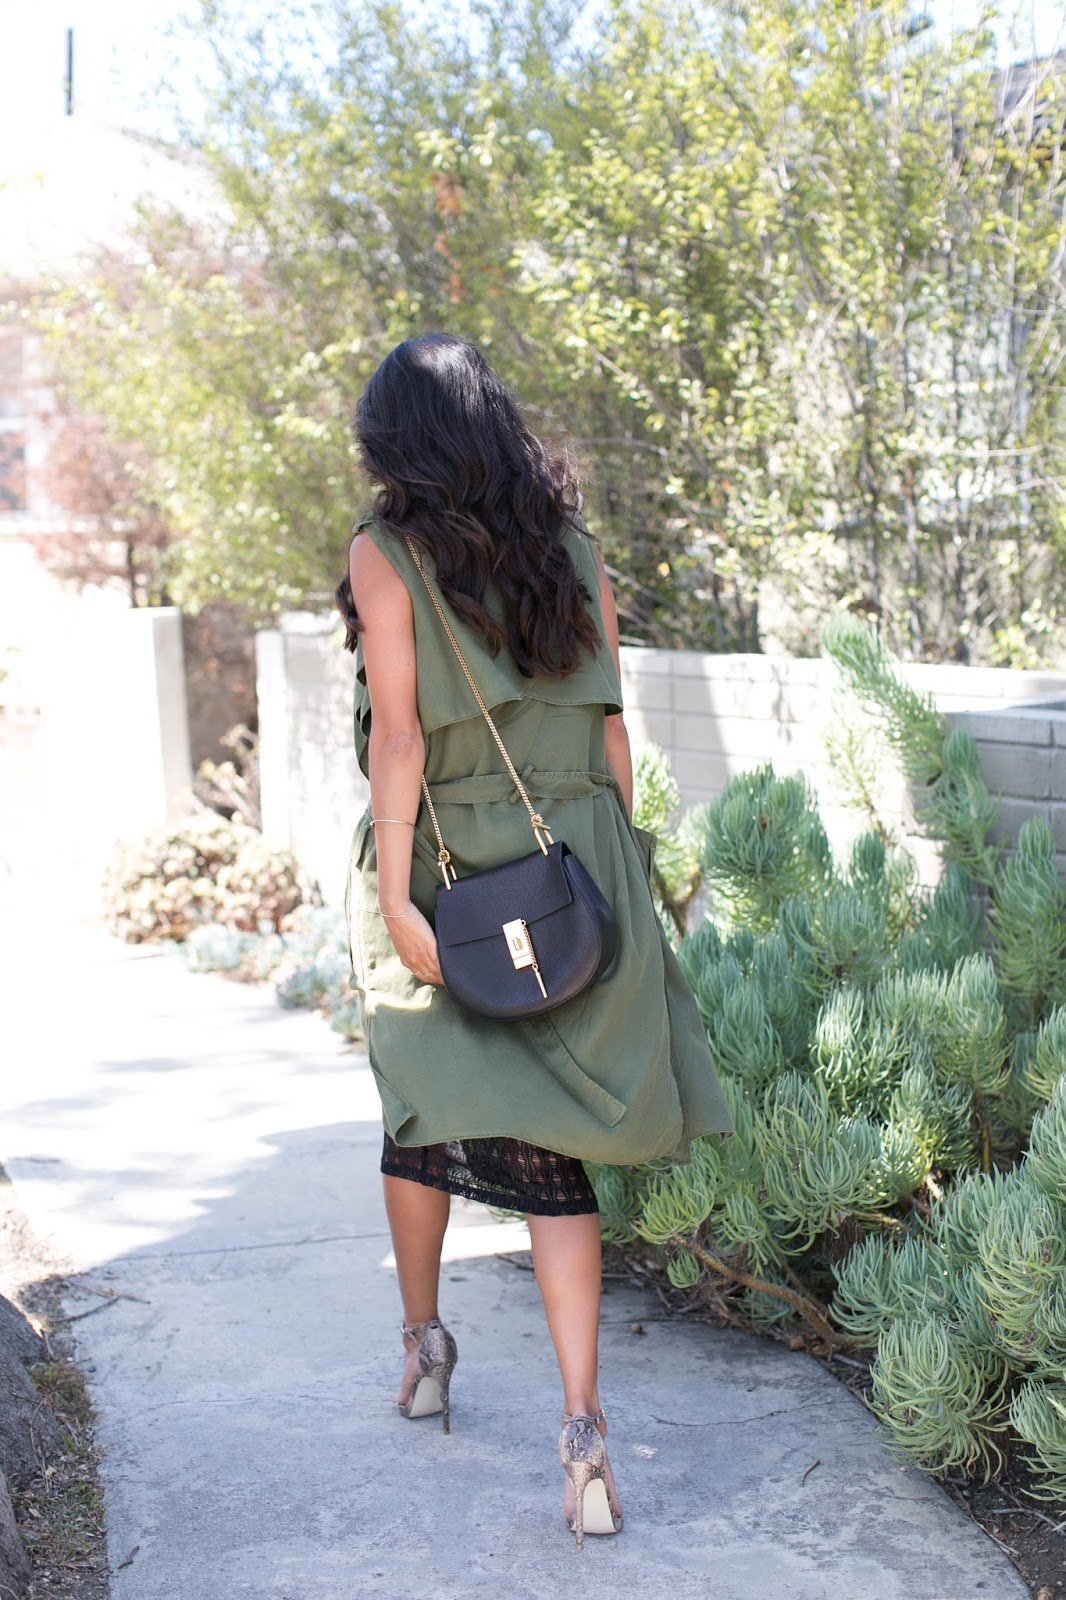 how to wear long vest, olive duster, see through skirt outfit, pursuit of shoes